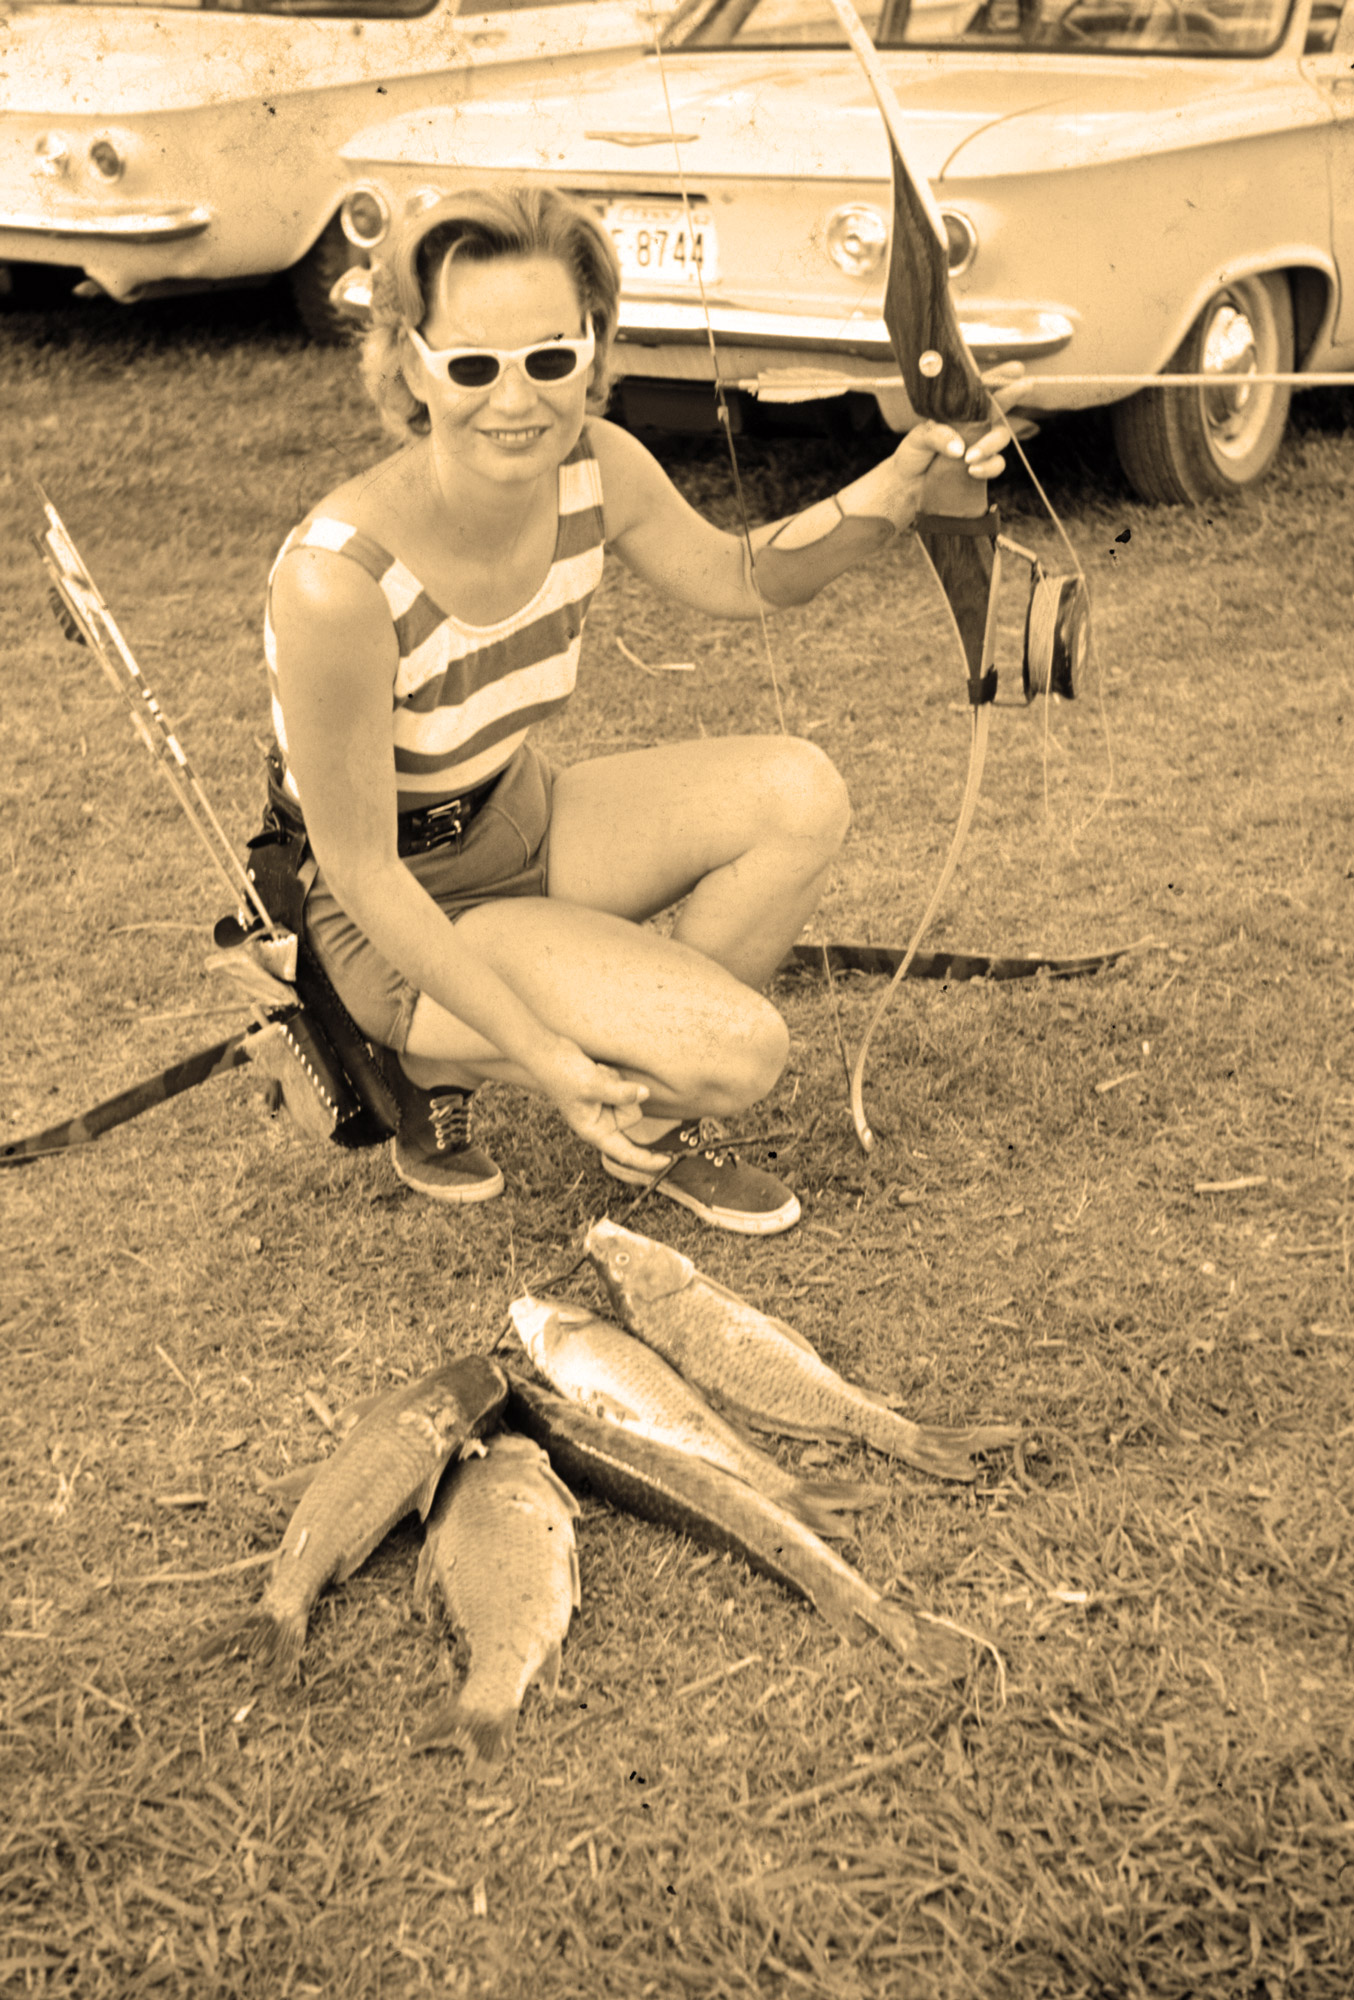 "<p>Robert and Marion Simms were avid archers. Besides deer hunting they loved to bowfish on Chickamauga Lake every Spring. Robert Simms was one of several area bowhunters who lobbied the wildlife agency for a special deer hunting season exclusively for bowhunters, agreeing to buy an extra special license (for $1, at the time). (Photo: Robert ""Bob"" Simms)</p>"